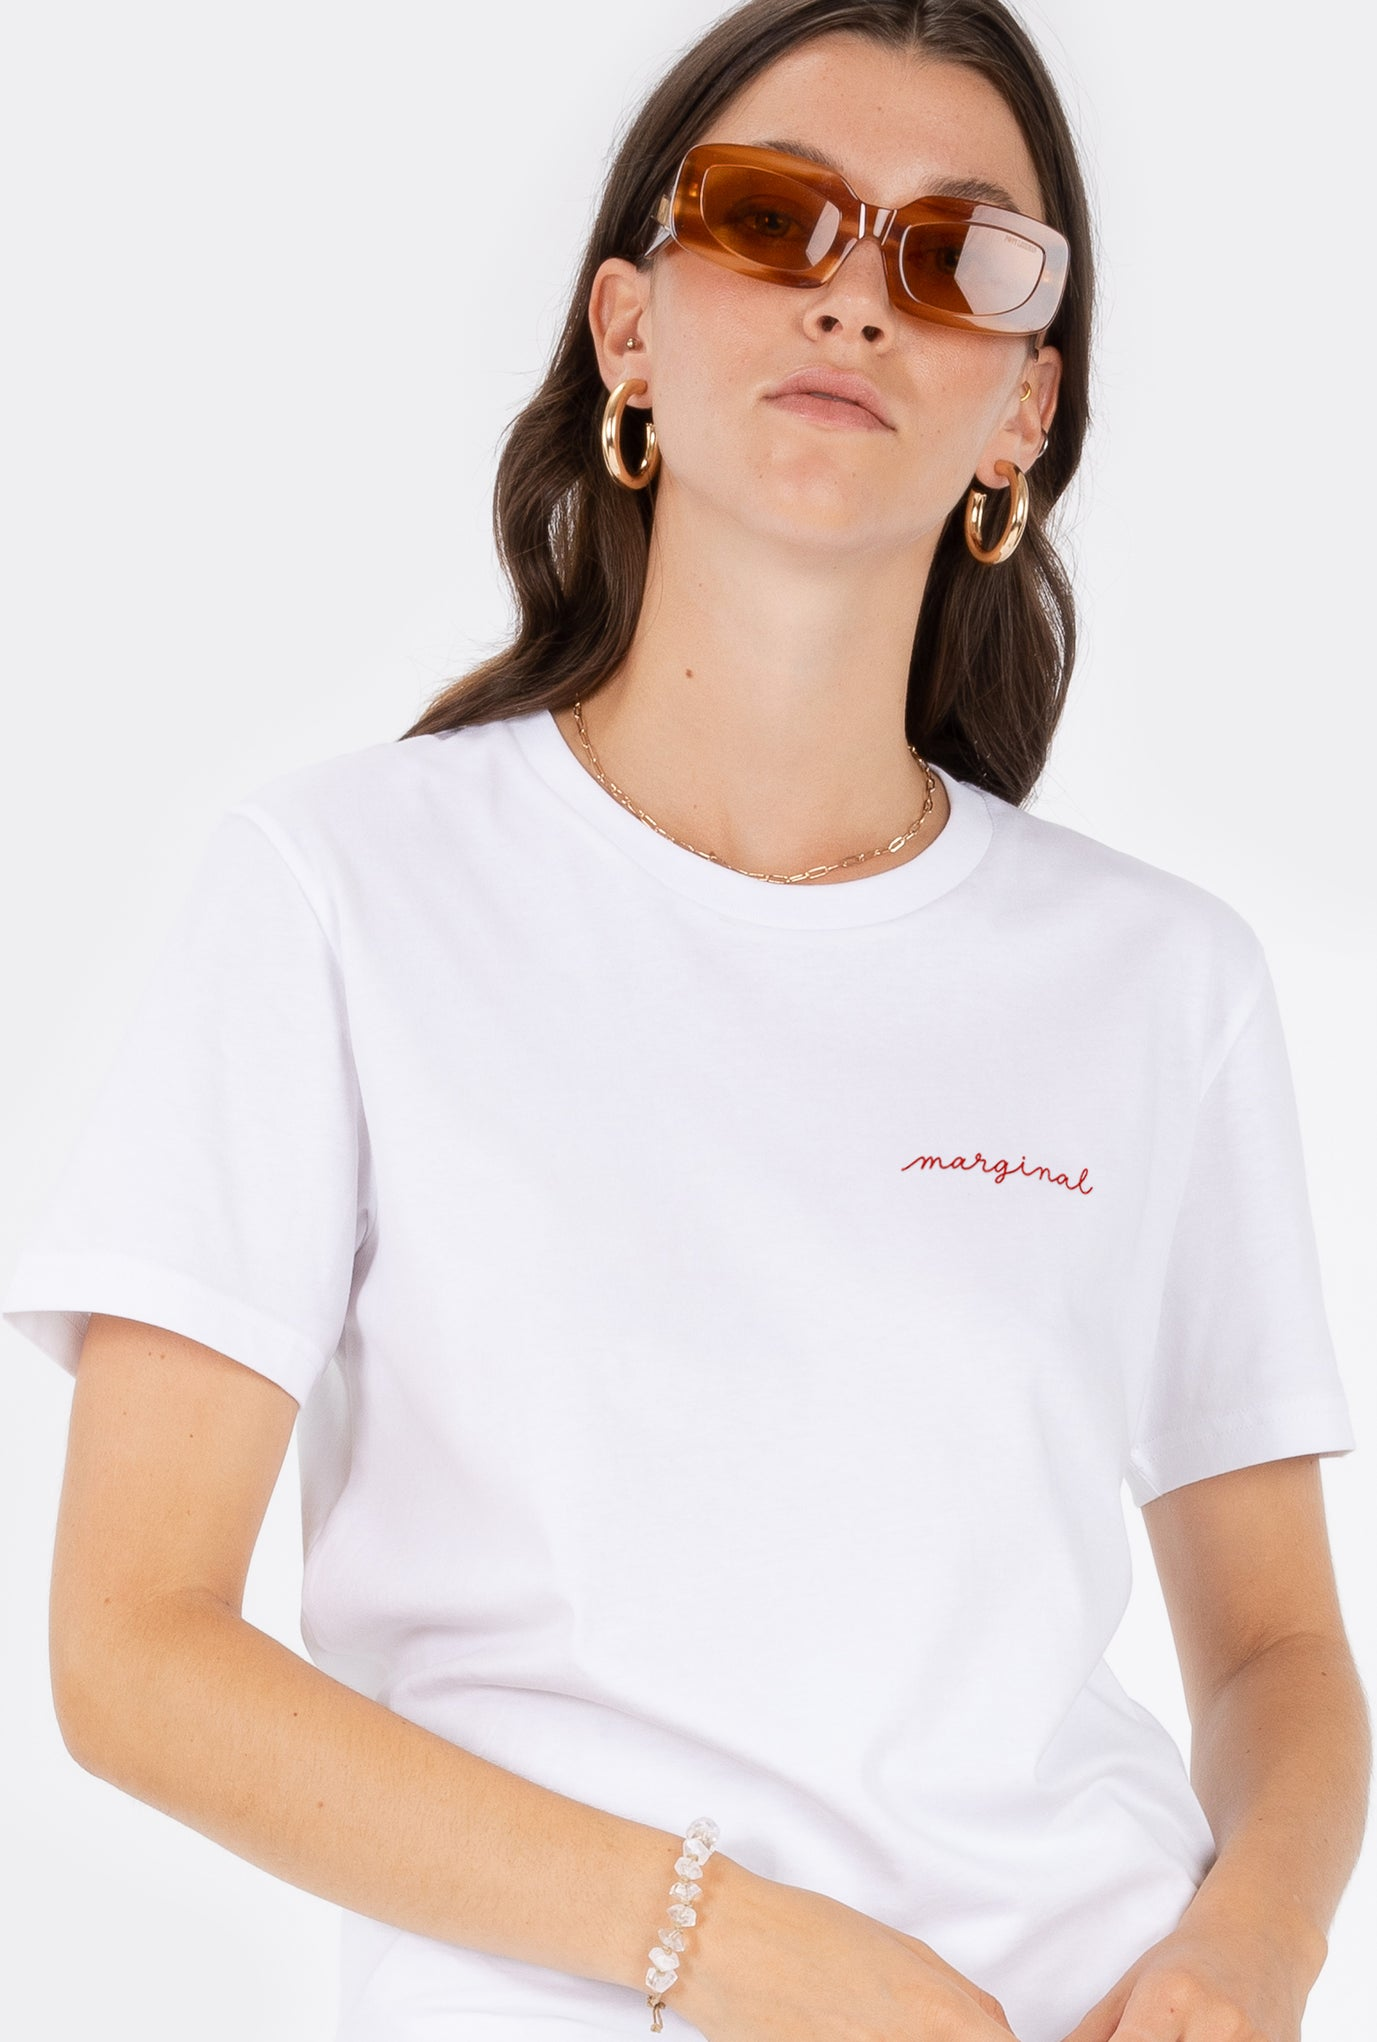 T-Shirt S/S Marginal - Embroidered